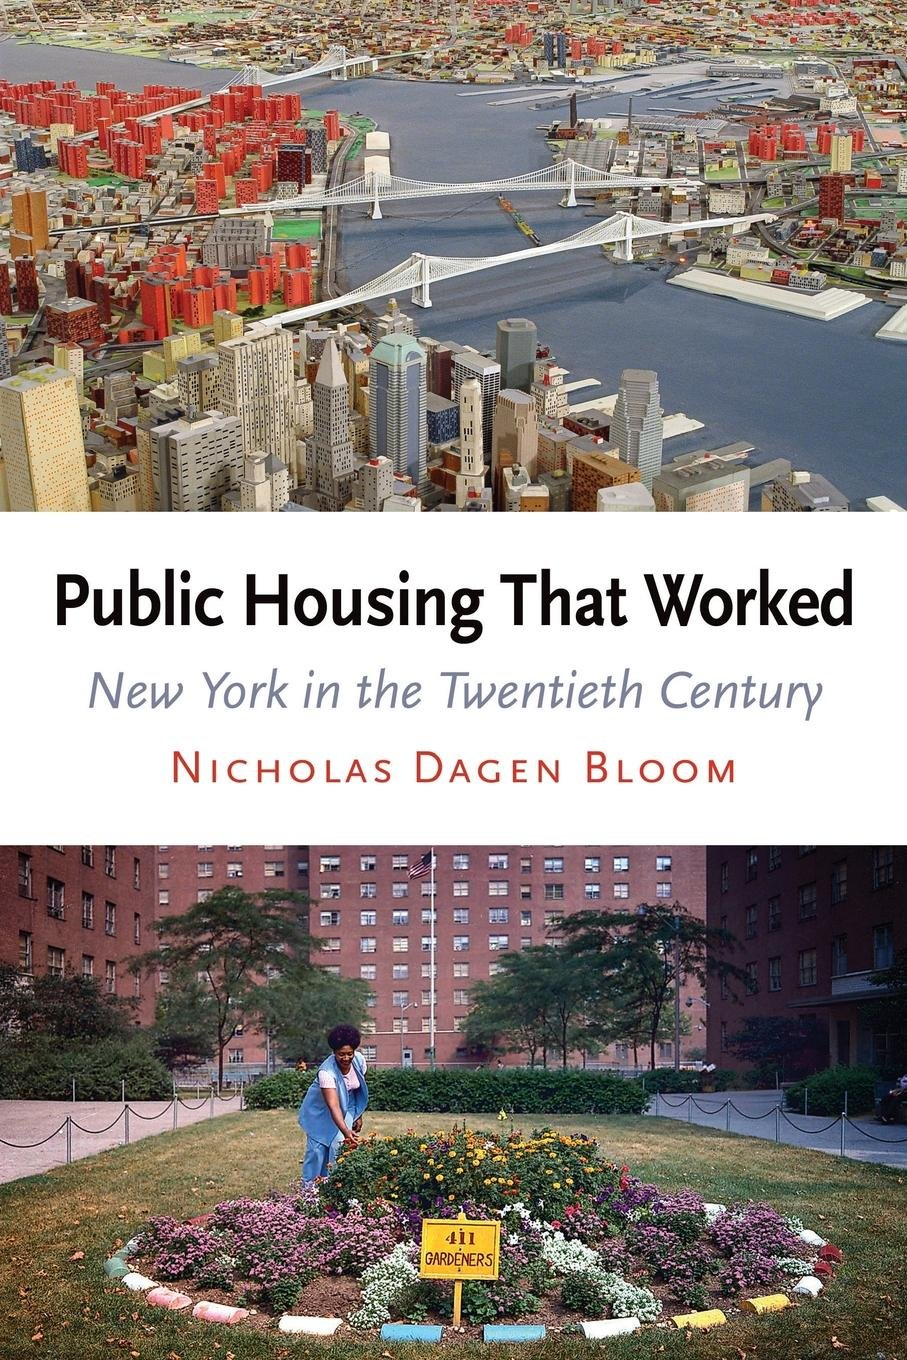 Public Housing That Worked: New York in the Twentieth Century PDF